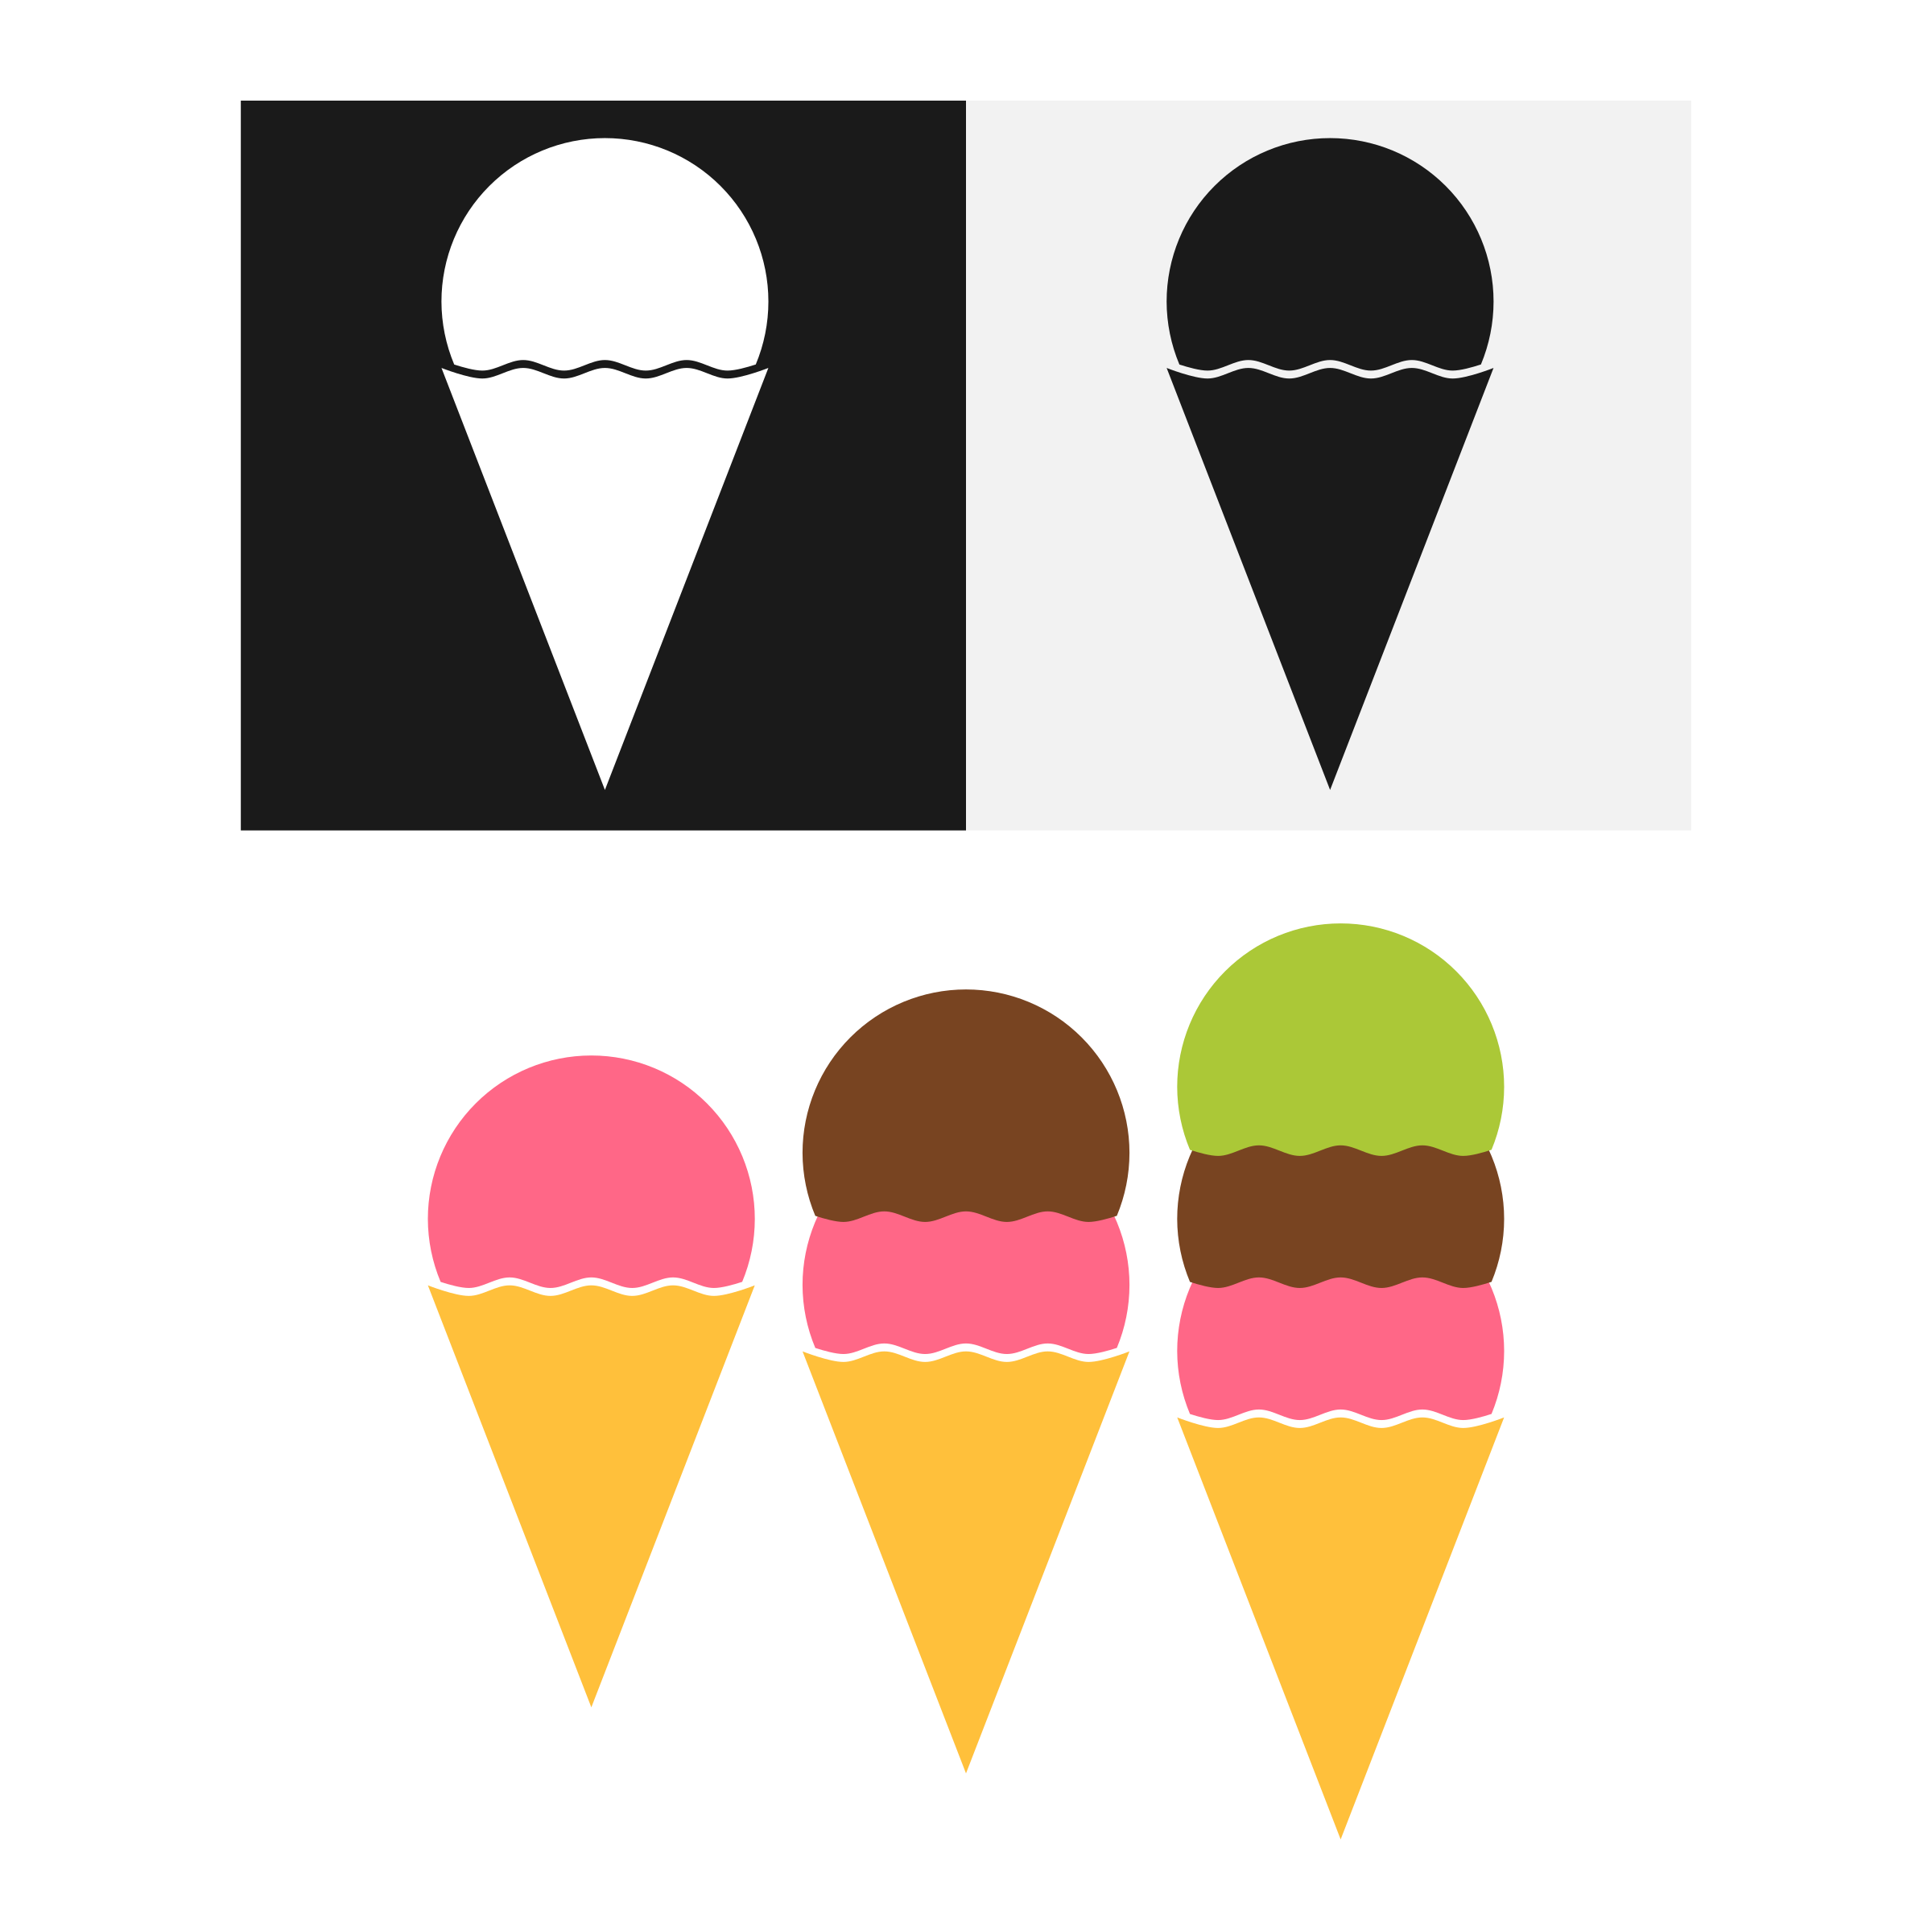 Minimalist Ice Cream Vectors  Collection by Maiconfz